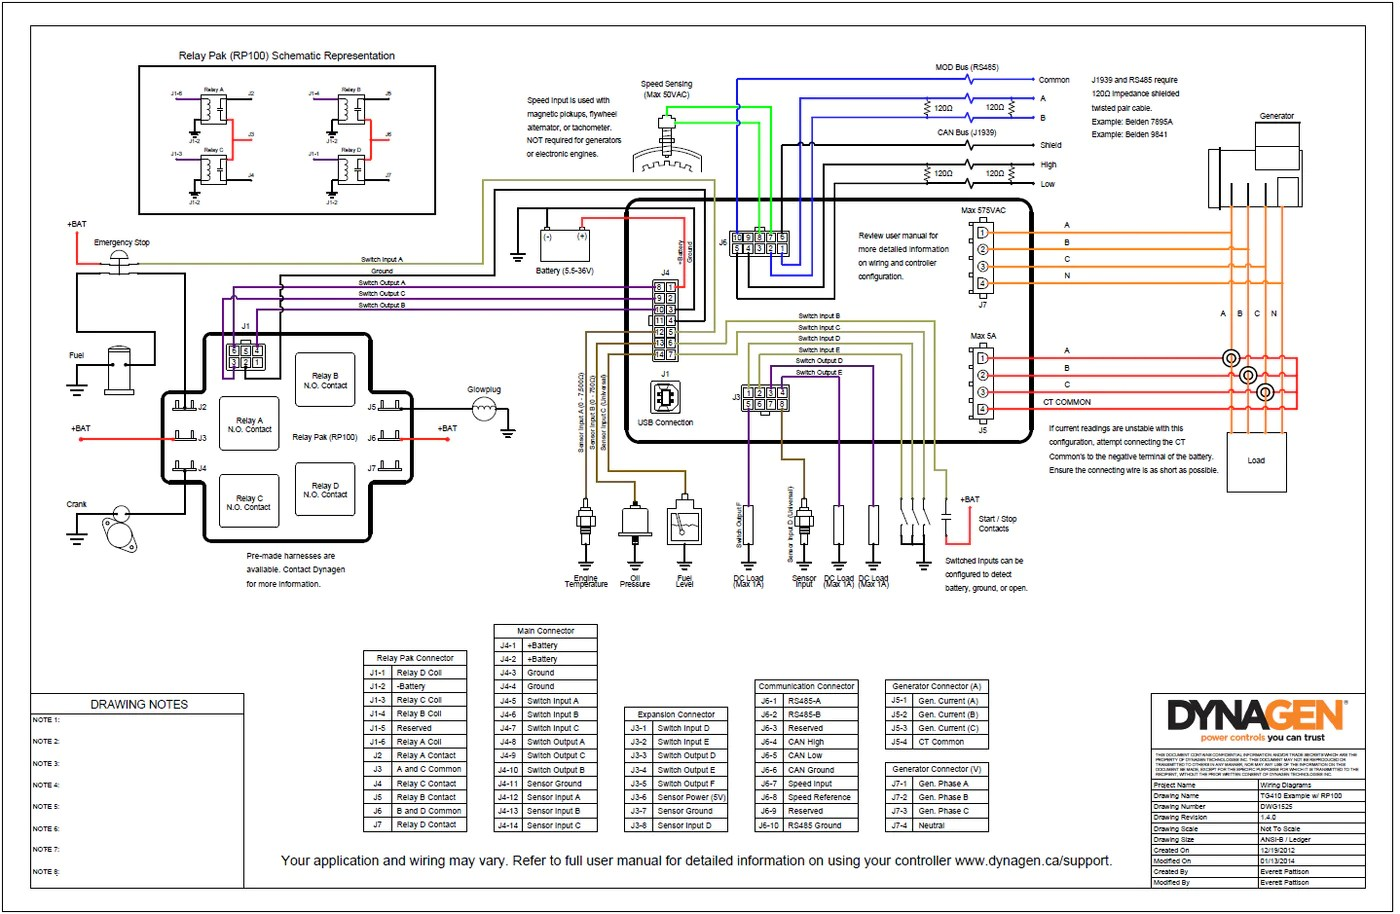 engine control panel typical wiring diagram  [ 1400 x 914 Pixel ]